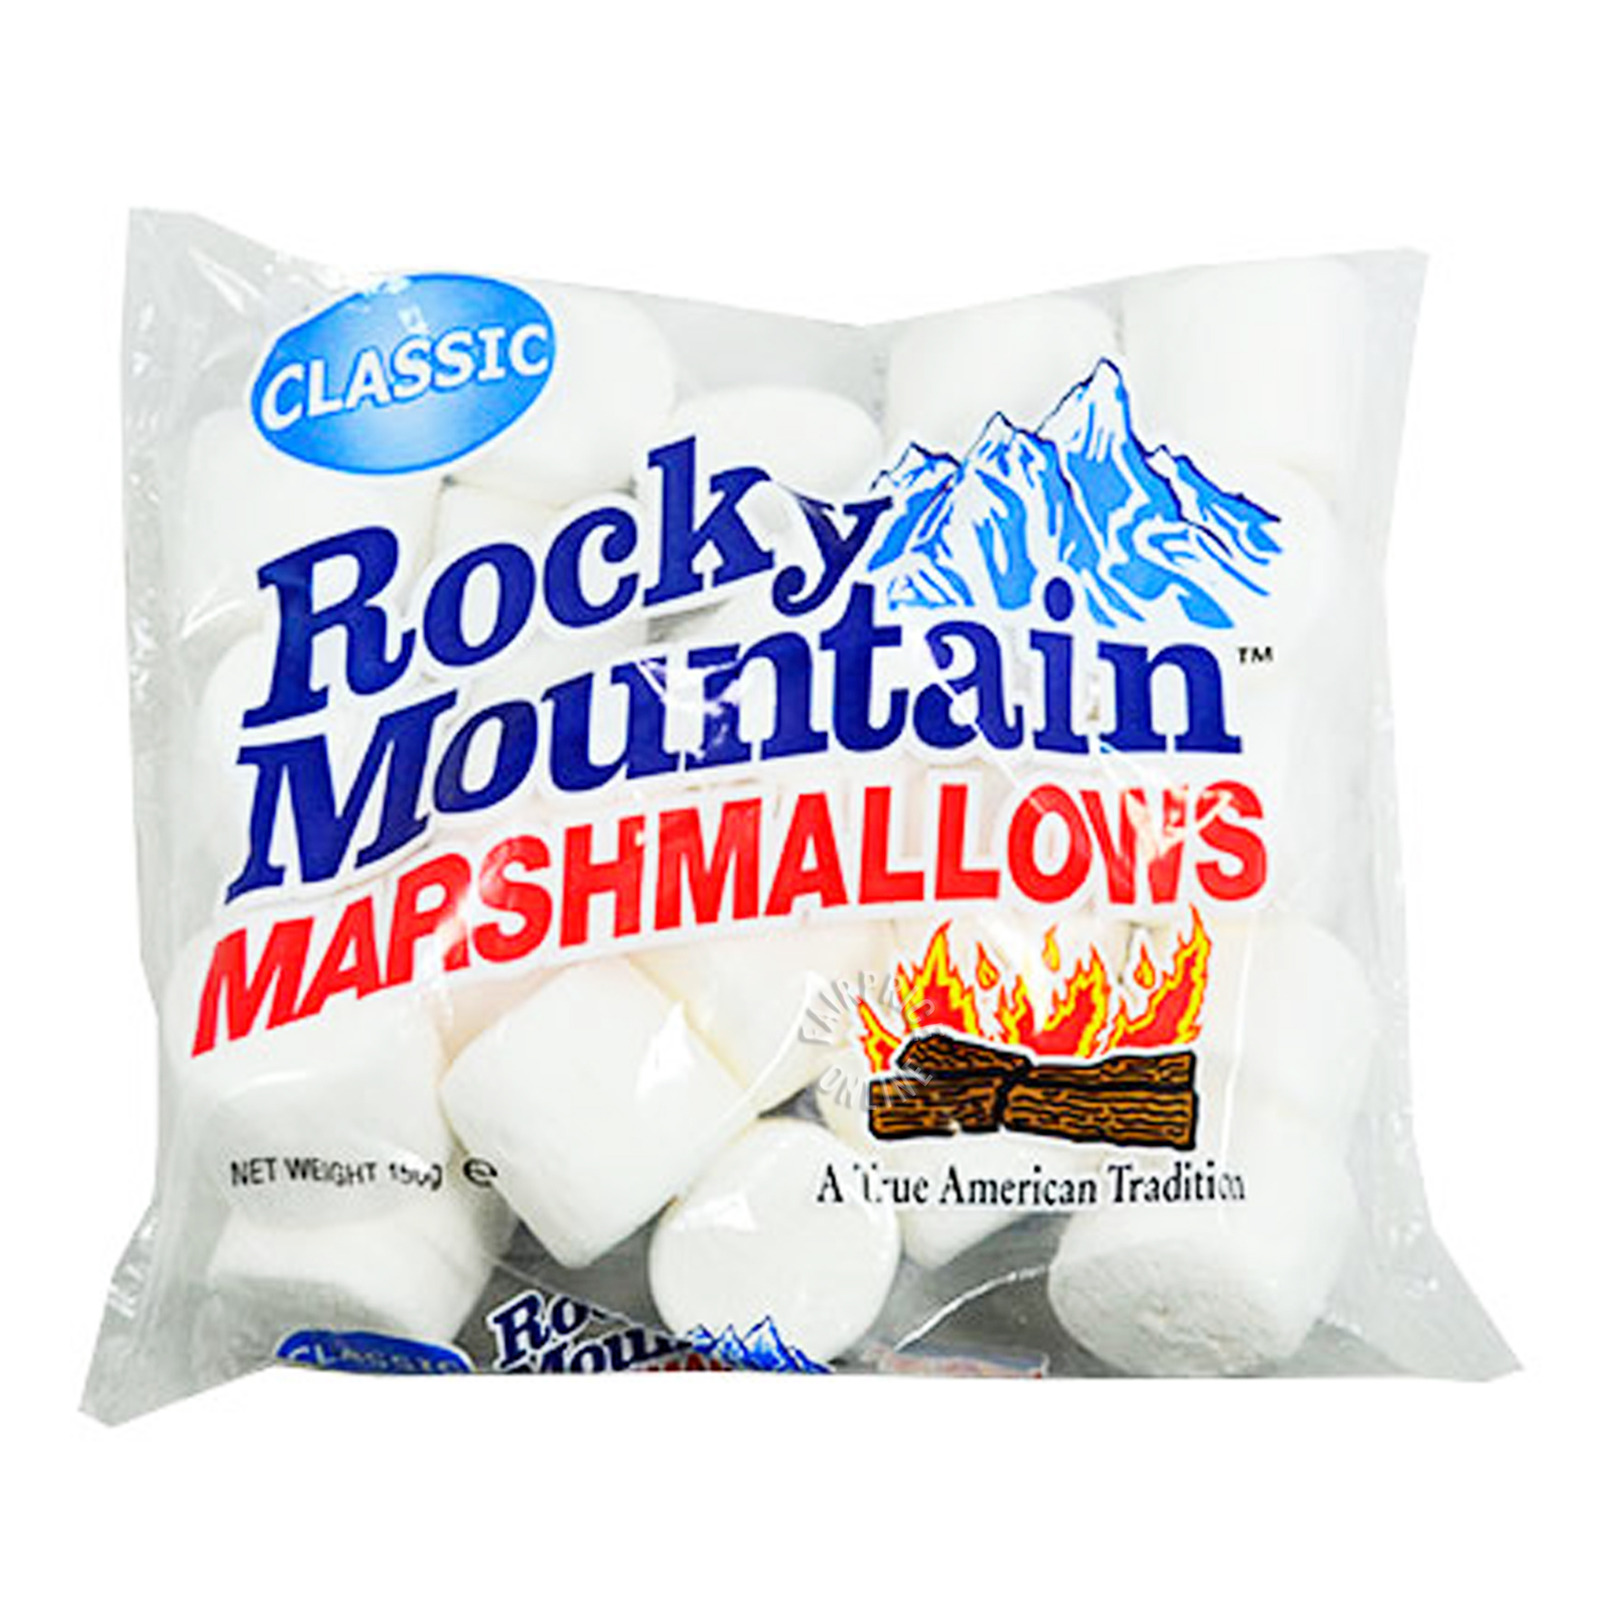 Rocky Mountain Marshmallows - Classic